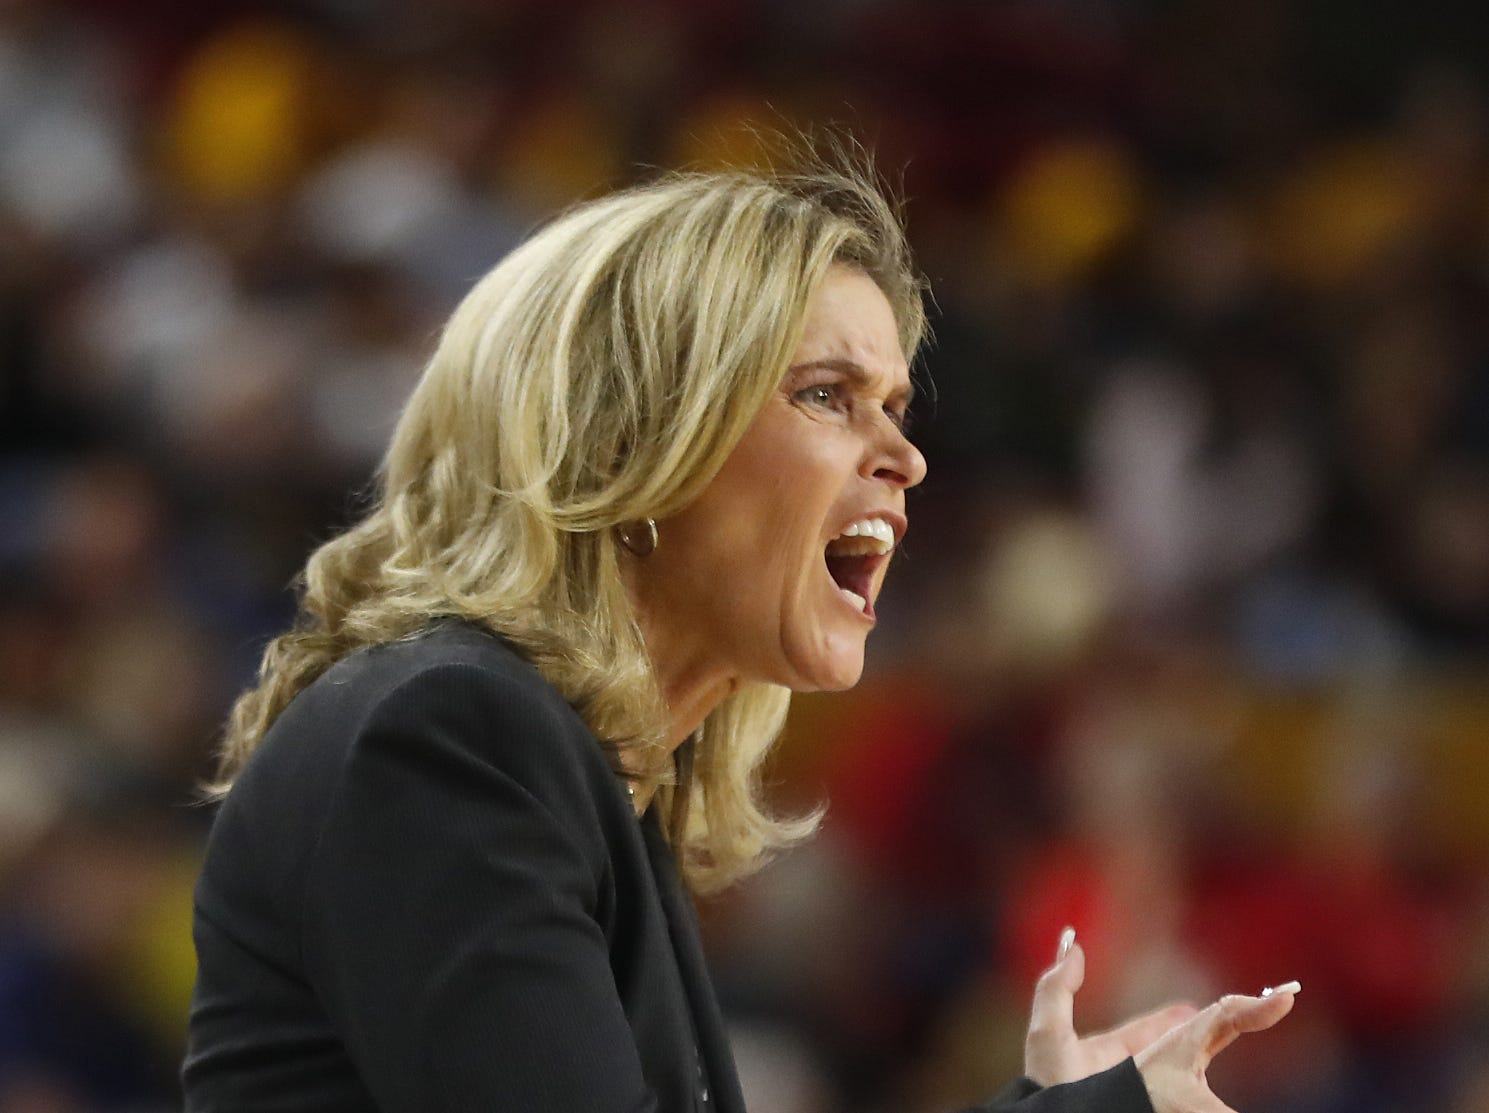 ASU's head coach Charli Turner Thorne claps after her team secures an offensive rebound against Arizona during the second half at Wells Fargo Arena in Tempe, Ariz. on February 1, 2019.